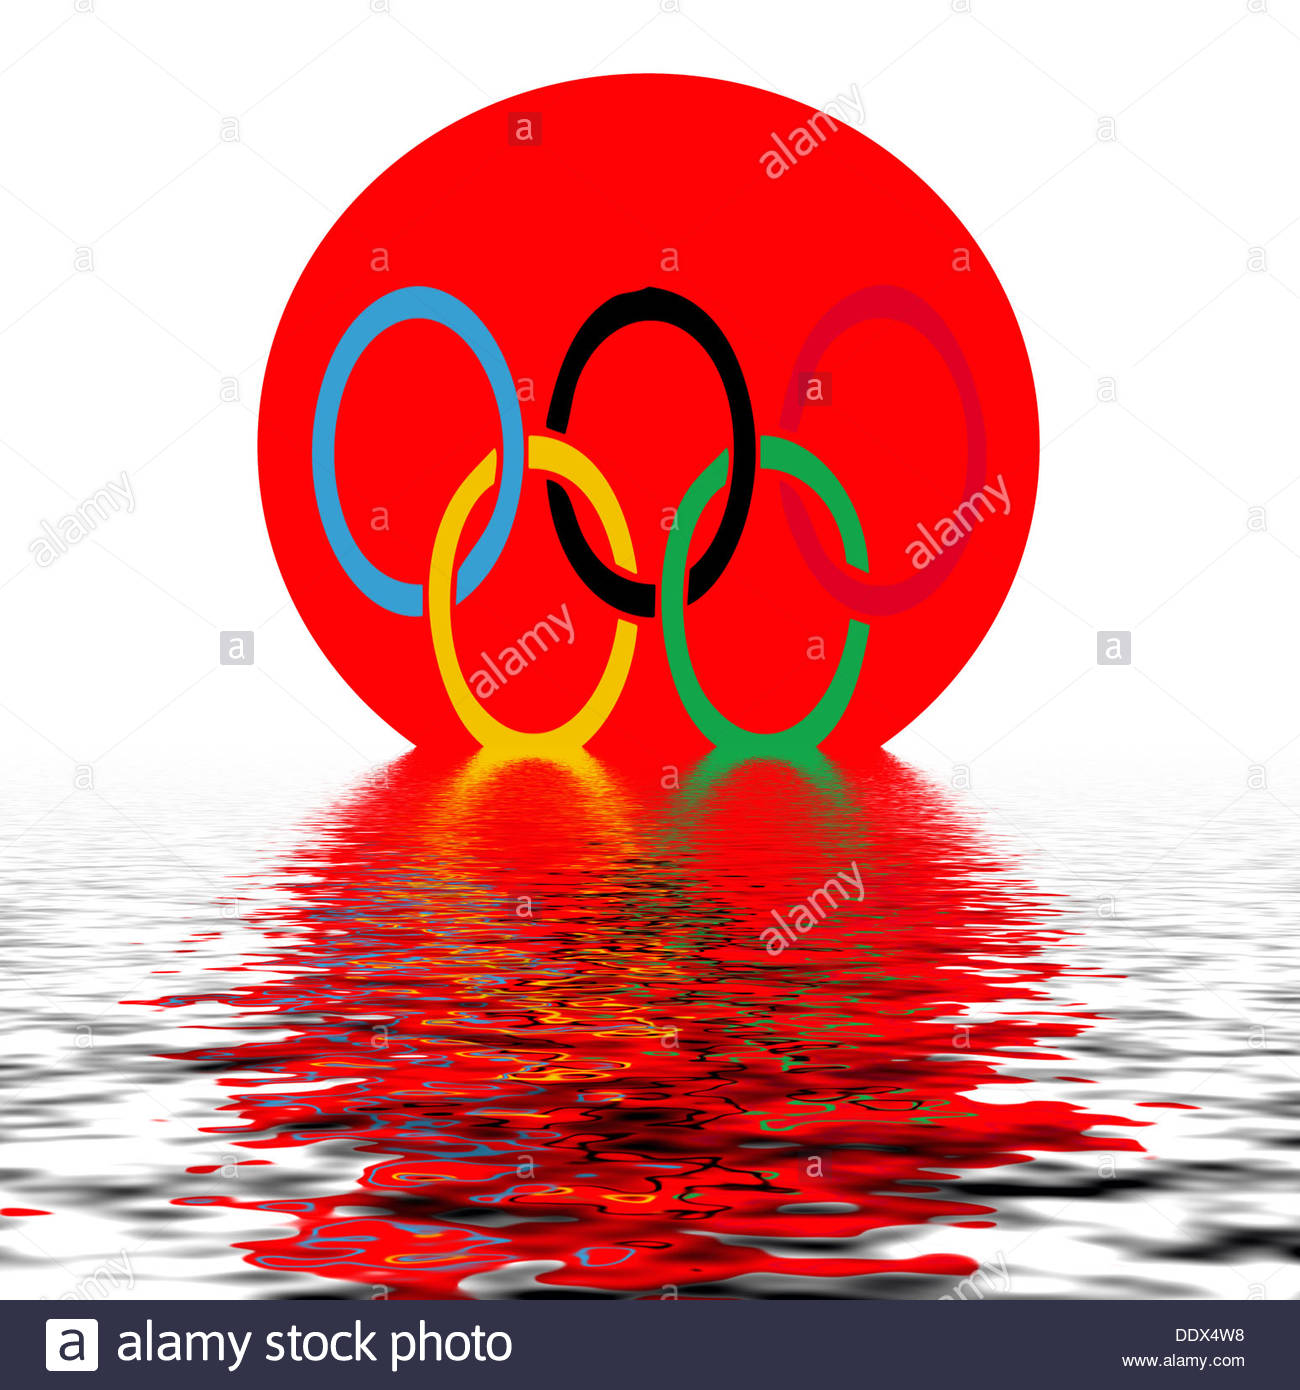 Digital composition - Tokyo Olympics 2020 - Stock Image